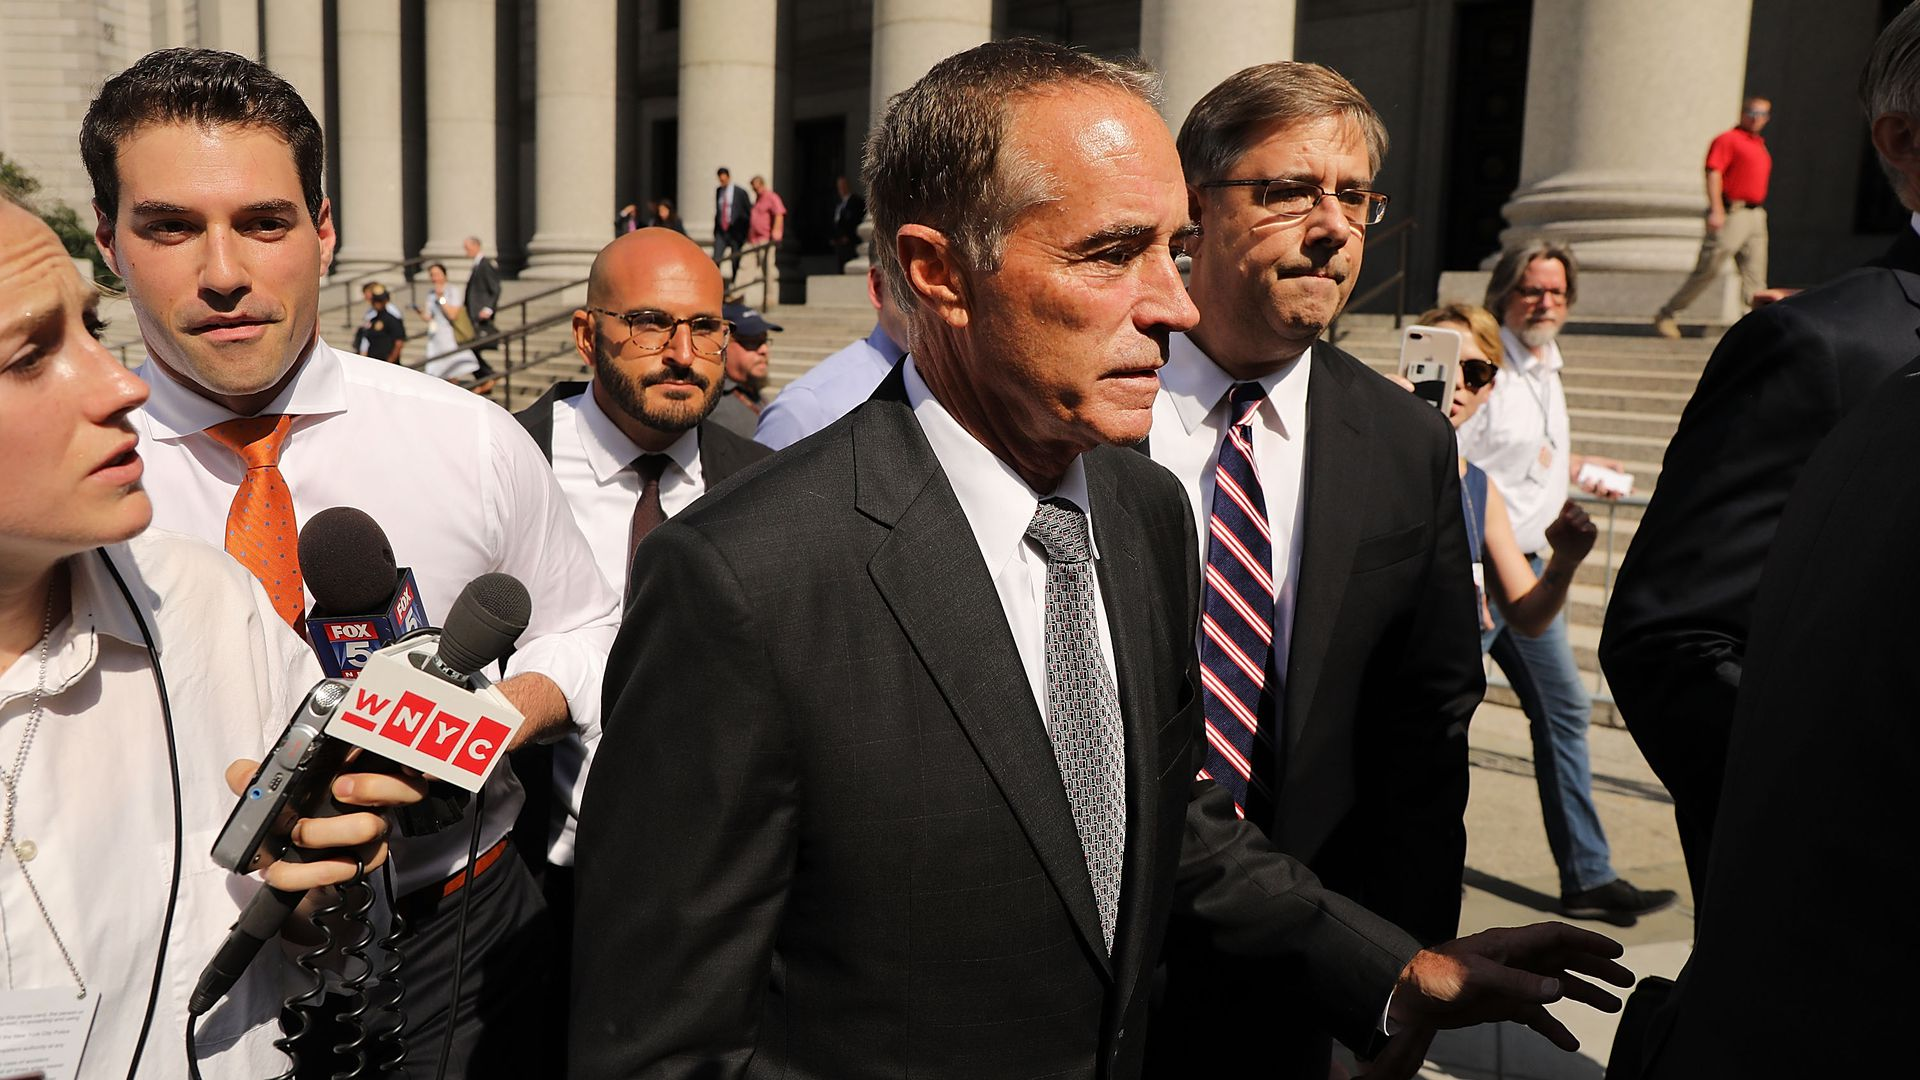 Chris collins outside of the DC courthouse in a black suit surrounded by reporters during the day.